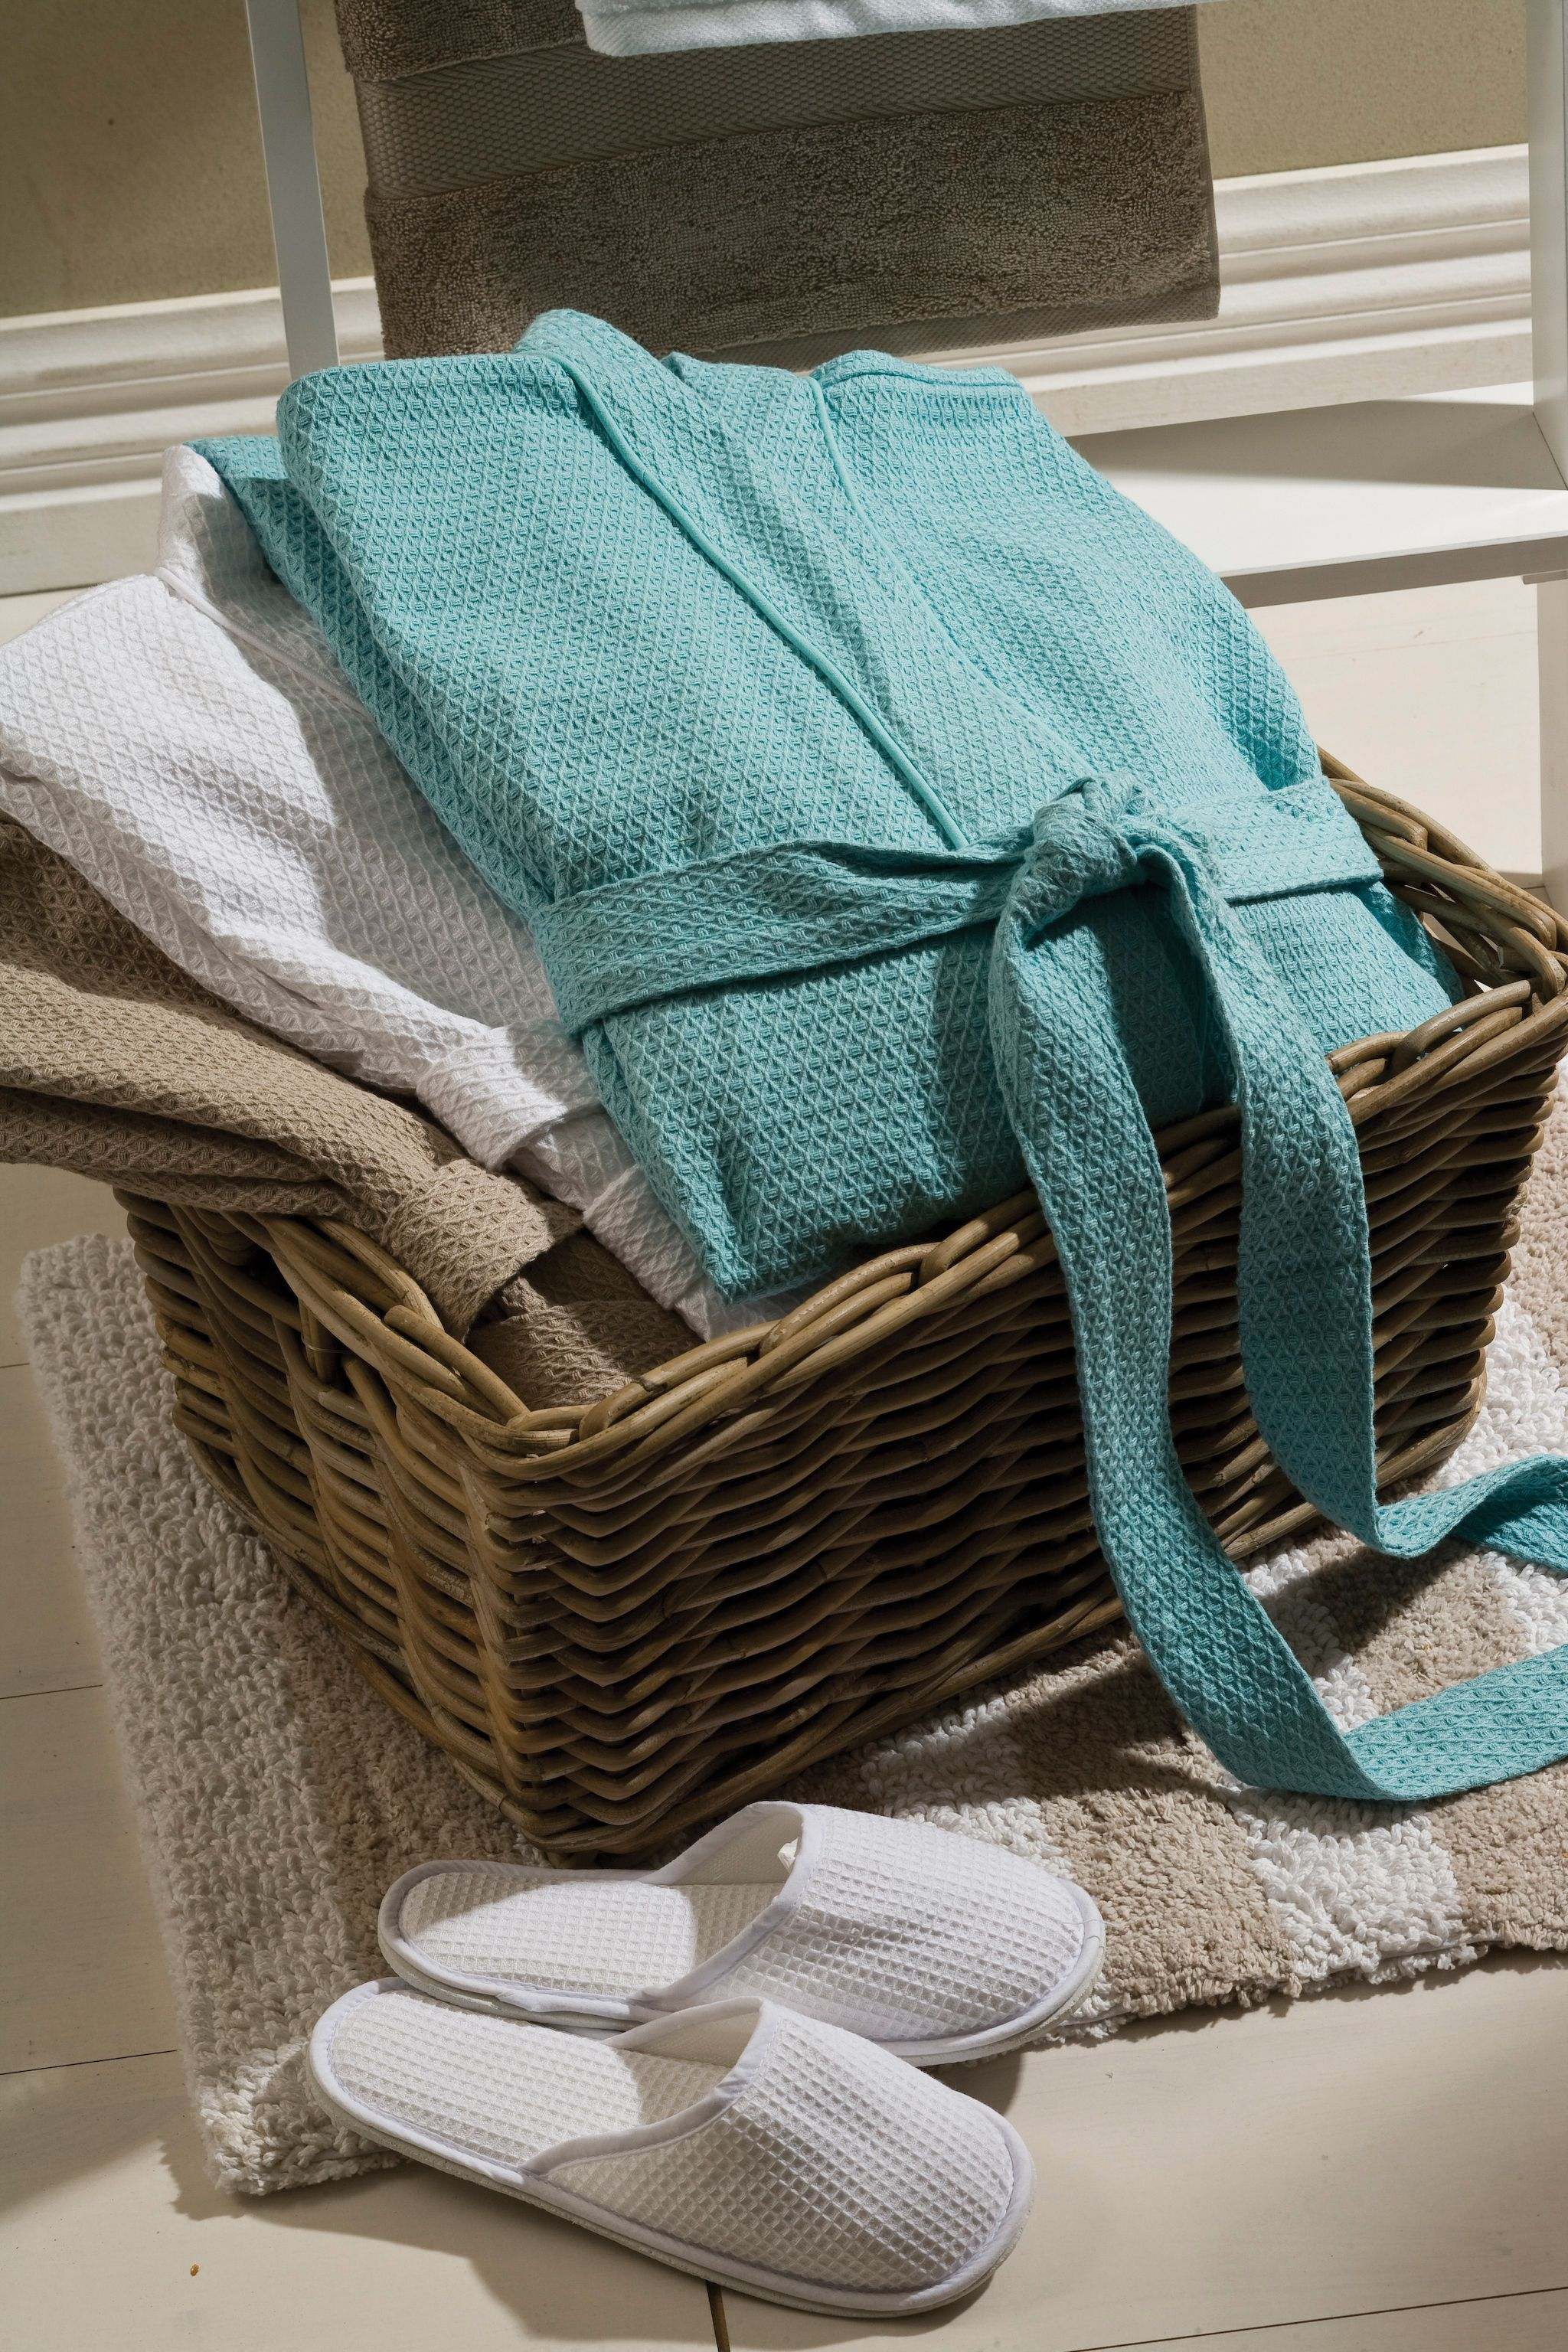 Coordinate the Bliss waffle robe and slippers to evoke a hotel vibe ...